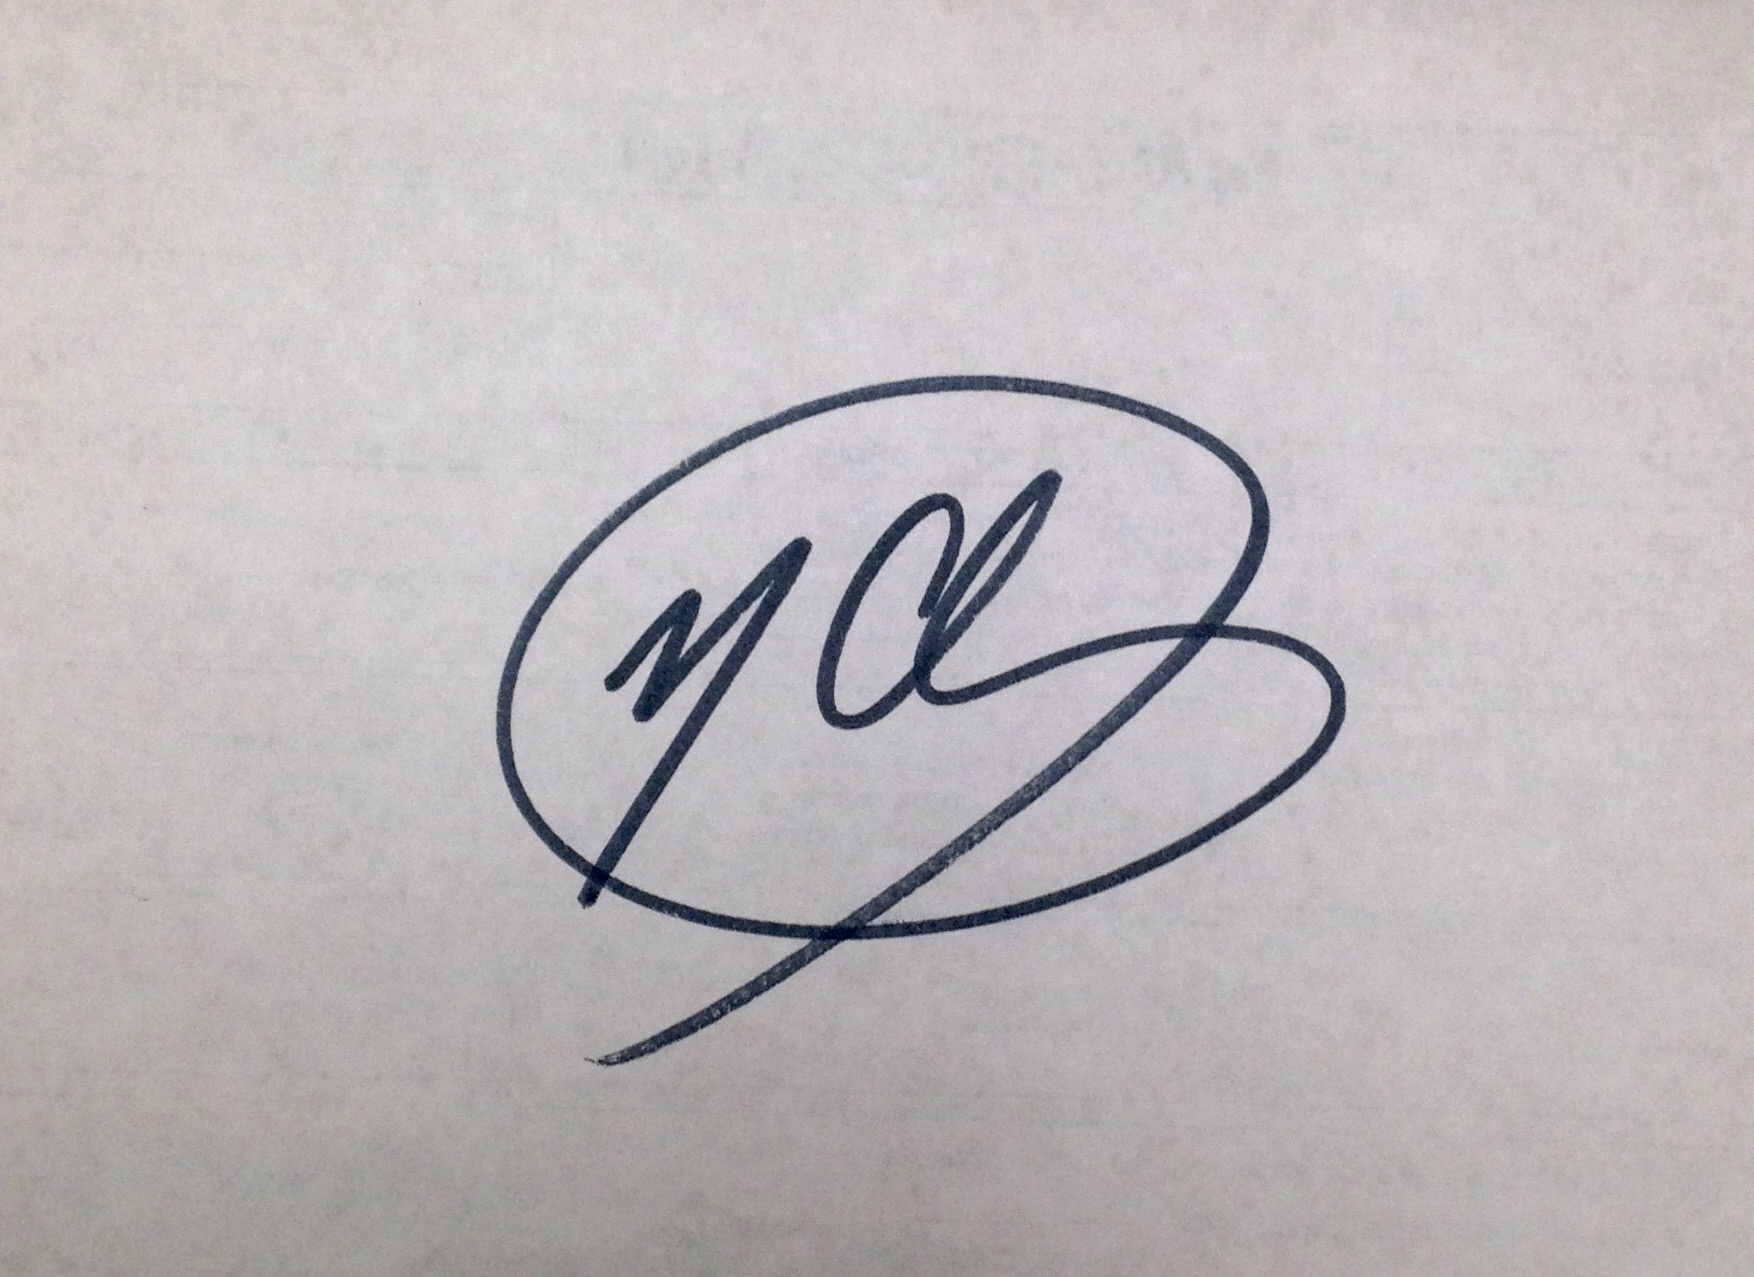 Michael Chewning's Signature